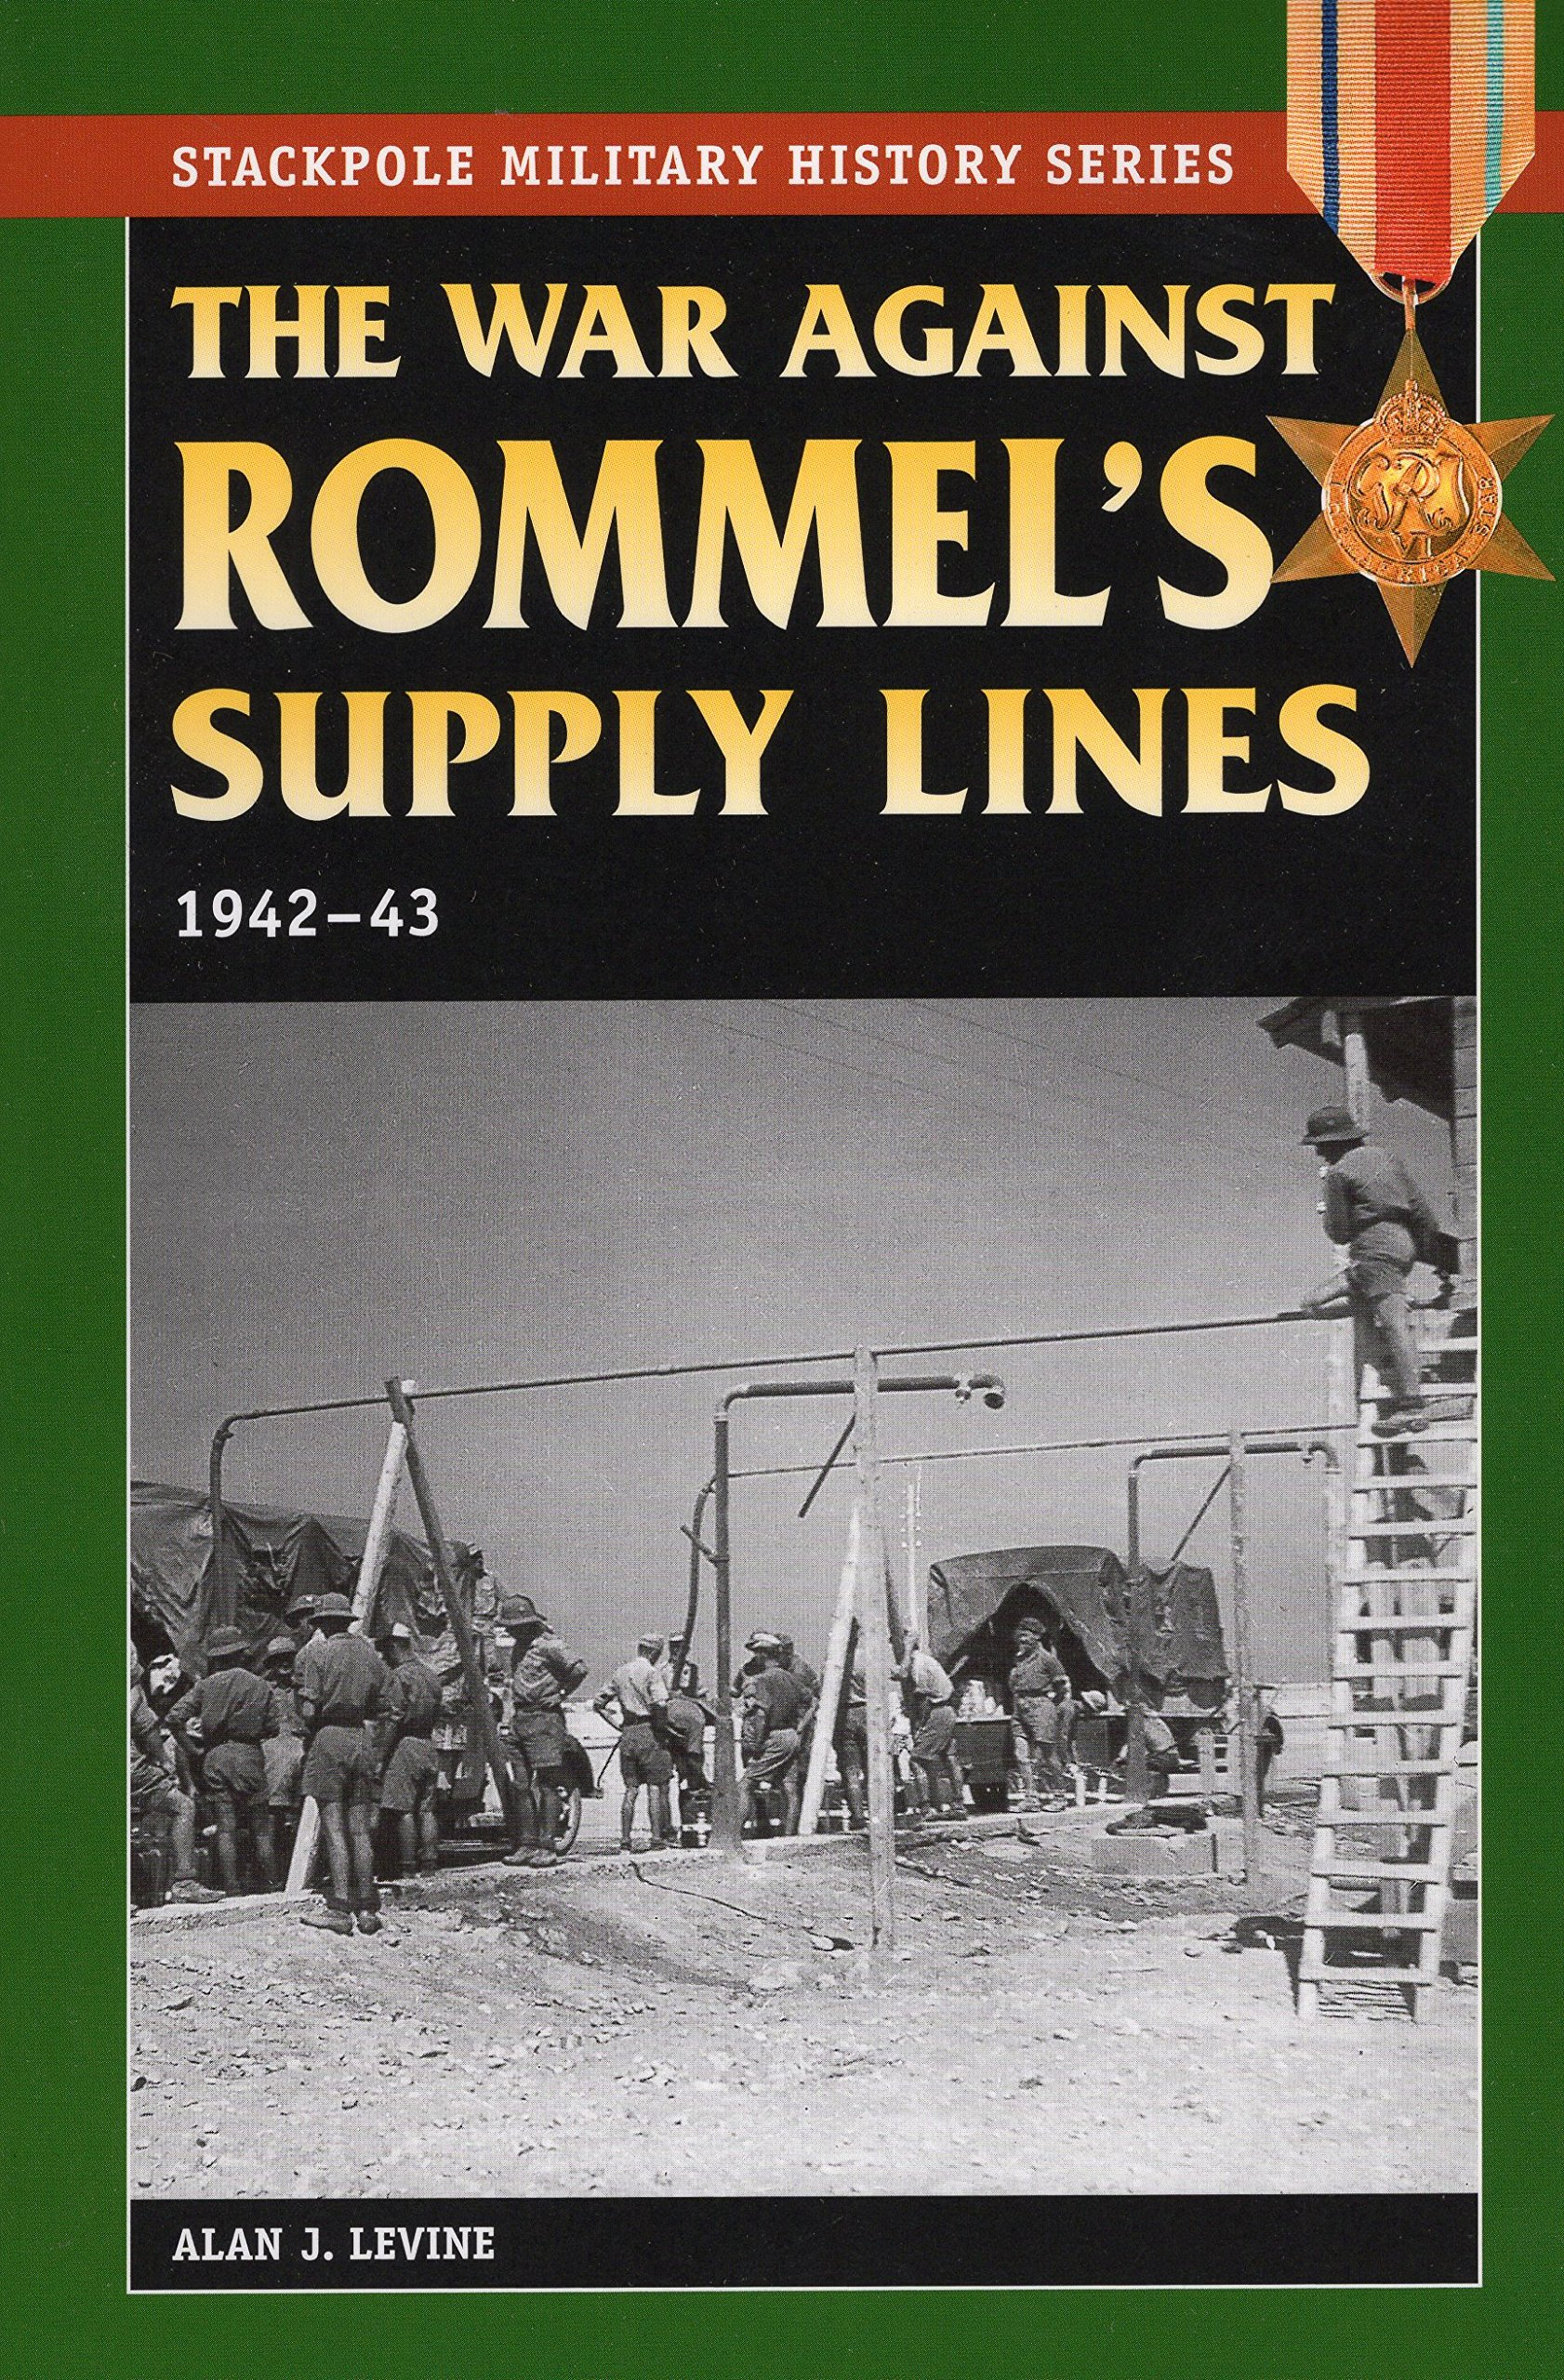 Read Online The War Against Rommel's Supply Lines, 1942-43 (Stackpole Military History Series) ebook